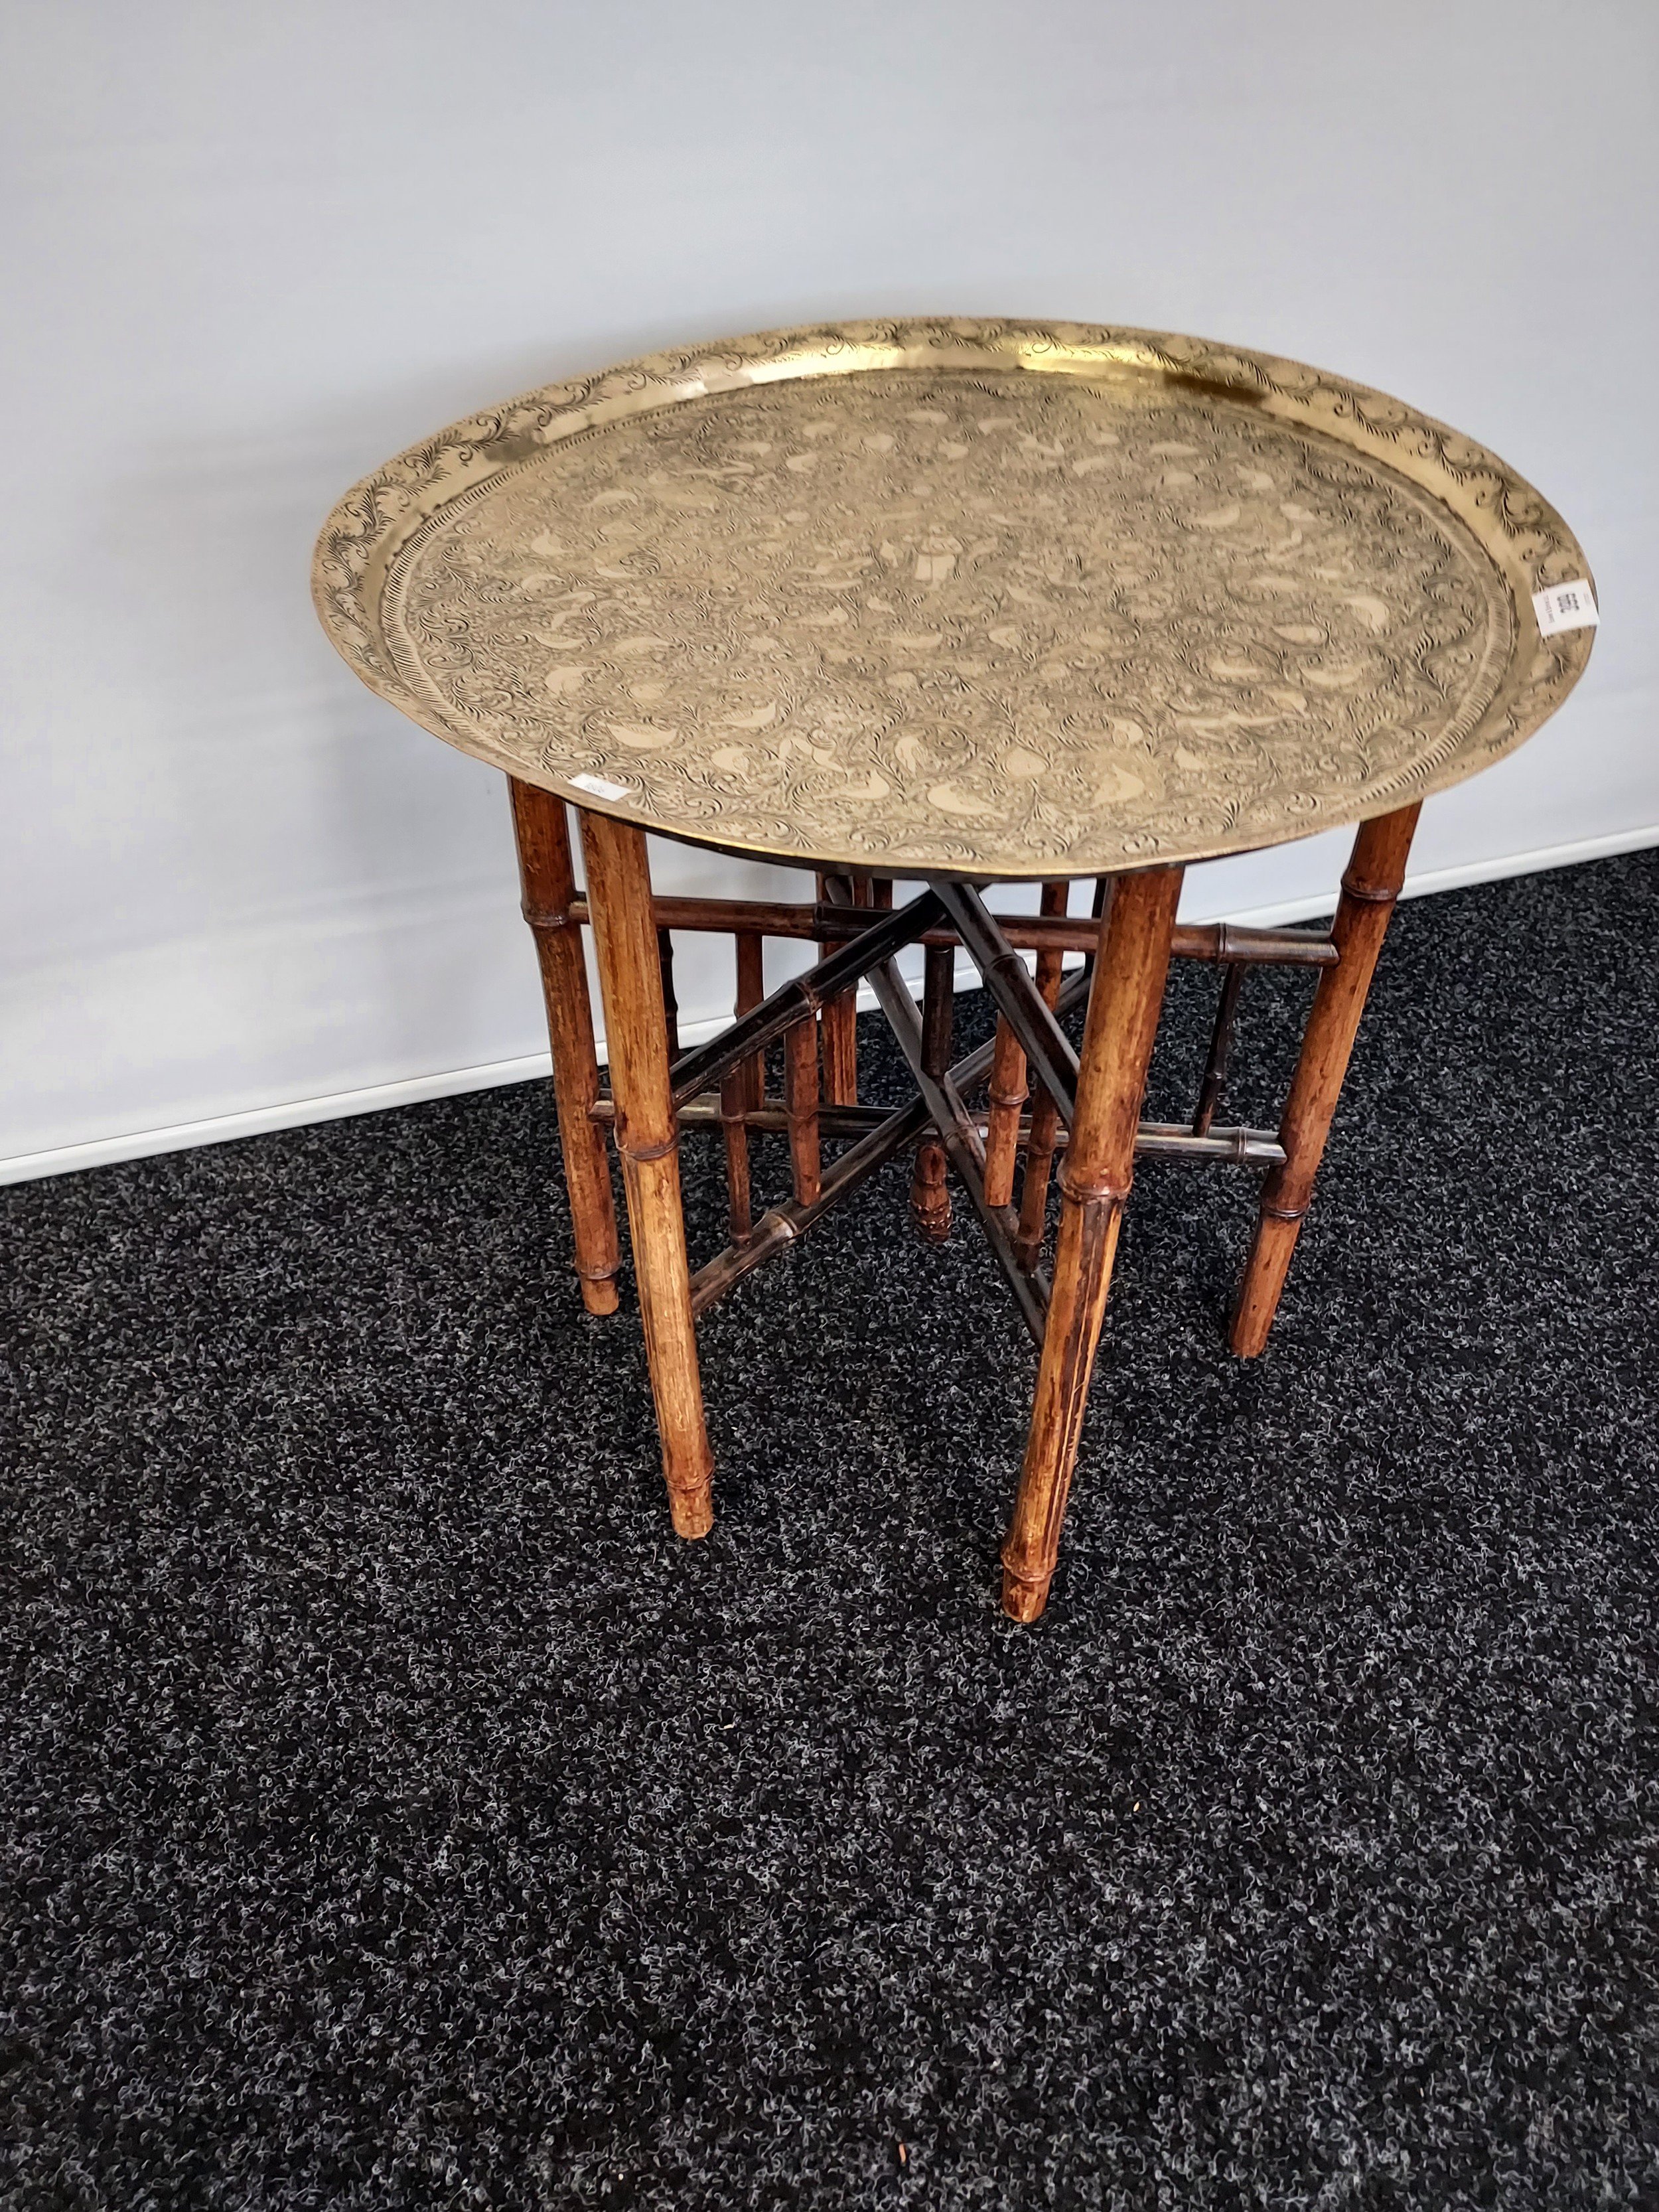 Antique Indian/ Benares decorative brass top wit folding bamboo table legs, Decoratively carved. - Image 2 of 4